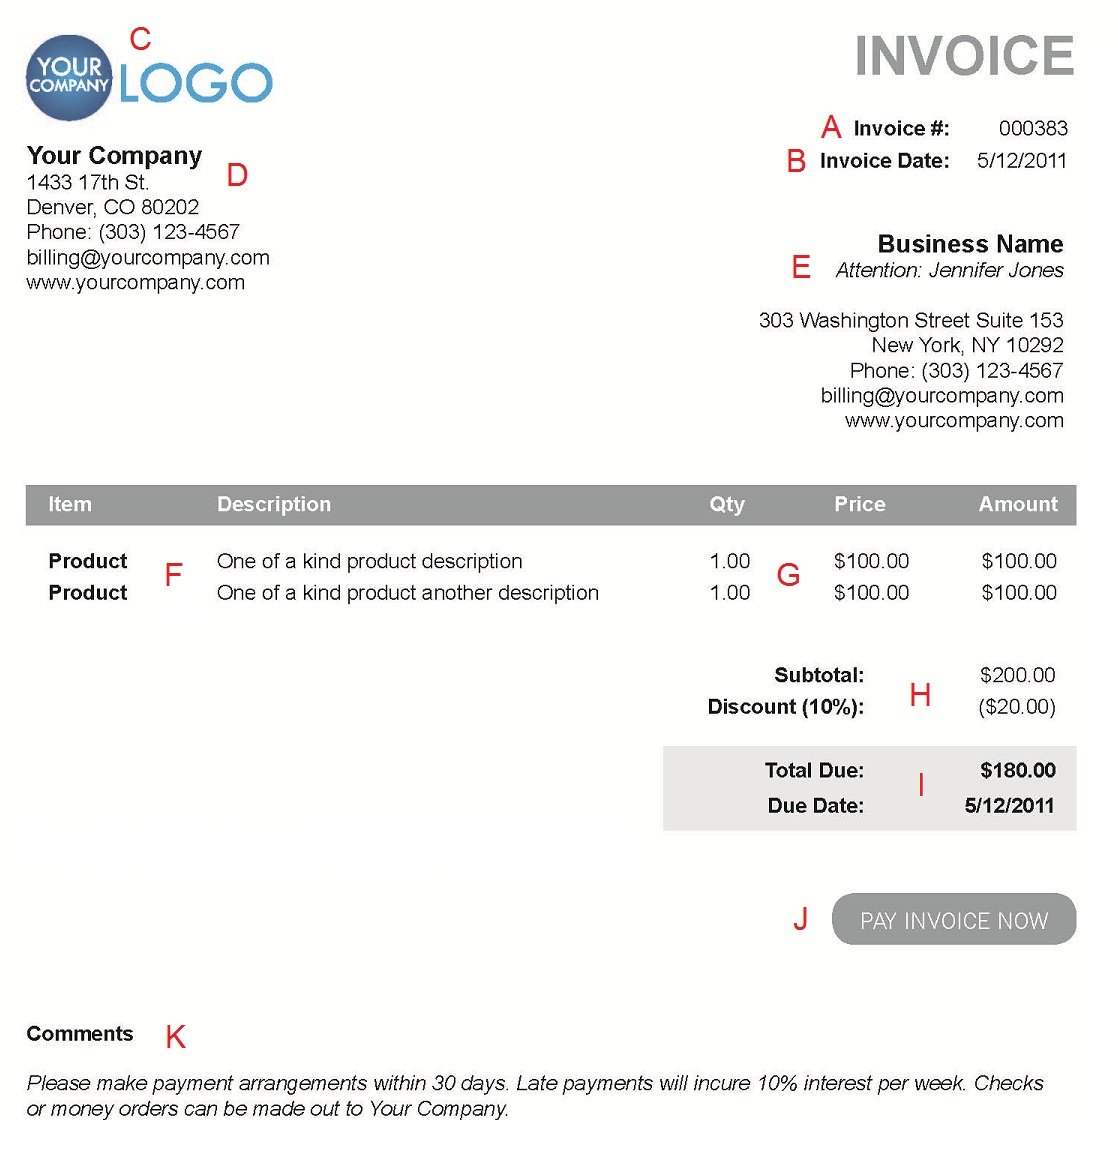 Centralasianshepherdus  Pleasing The  Different Sections Of An Electronic Payment Invoice With Entrancing A  With Divine How Make Invoice Also How To Determine Invoice Price On A New Car In Addition Proforma Invoice And Invoice And Invoice Software Torrent As Well As Sample Ebay Invoice Additionally Australia Tax Invoice From Paysimplecom With Centralasianshepherdus  Entrancing The  Different Sections Of An Electronic Payment Invoice With Divine A  And Pleasing How Make Invoice Also How To Determine Invoice Price On A New Car In Addition Proforma Invoice And Invoice From Paysimplecom